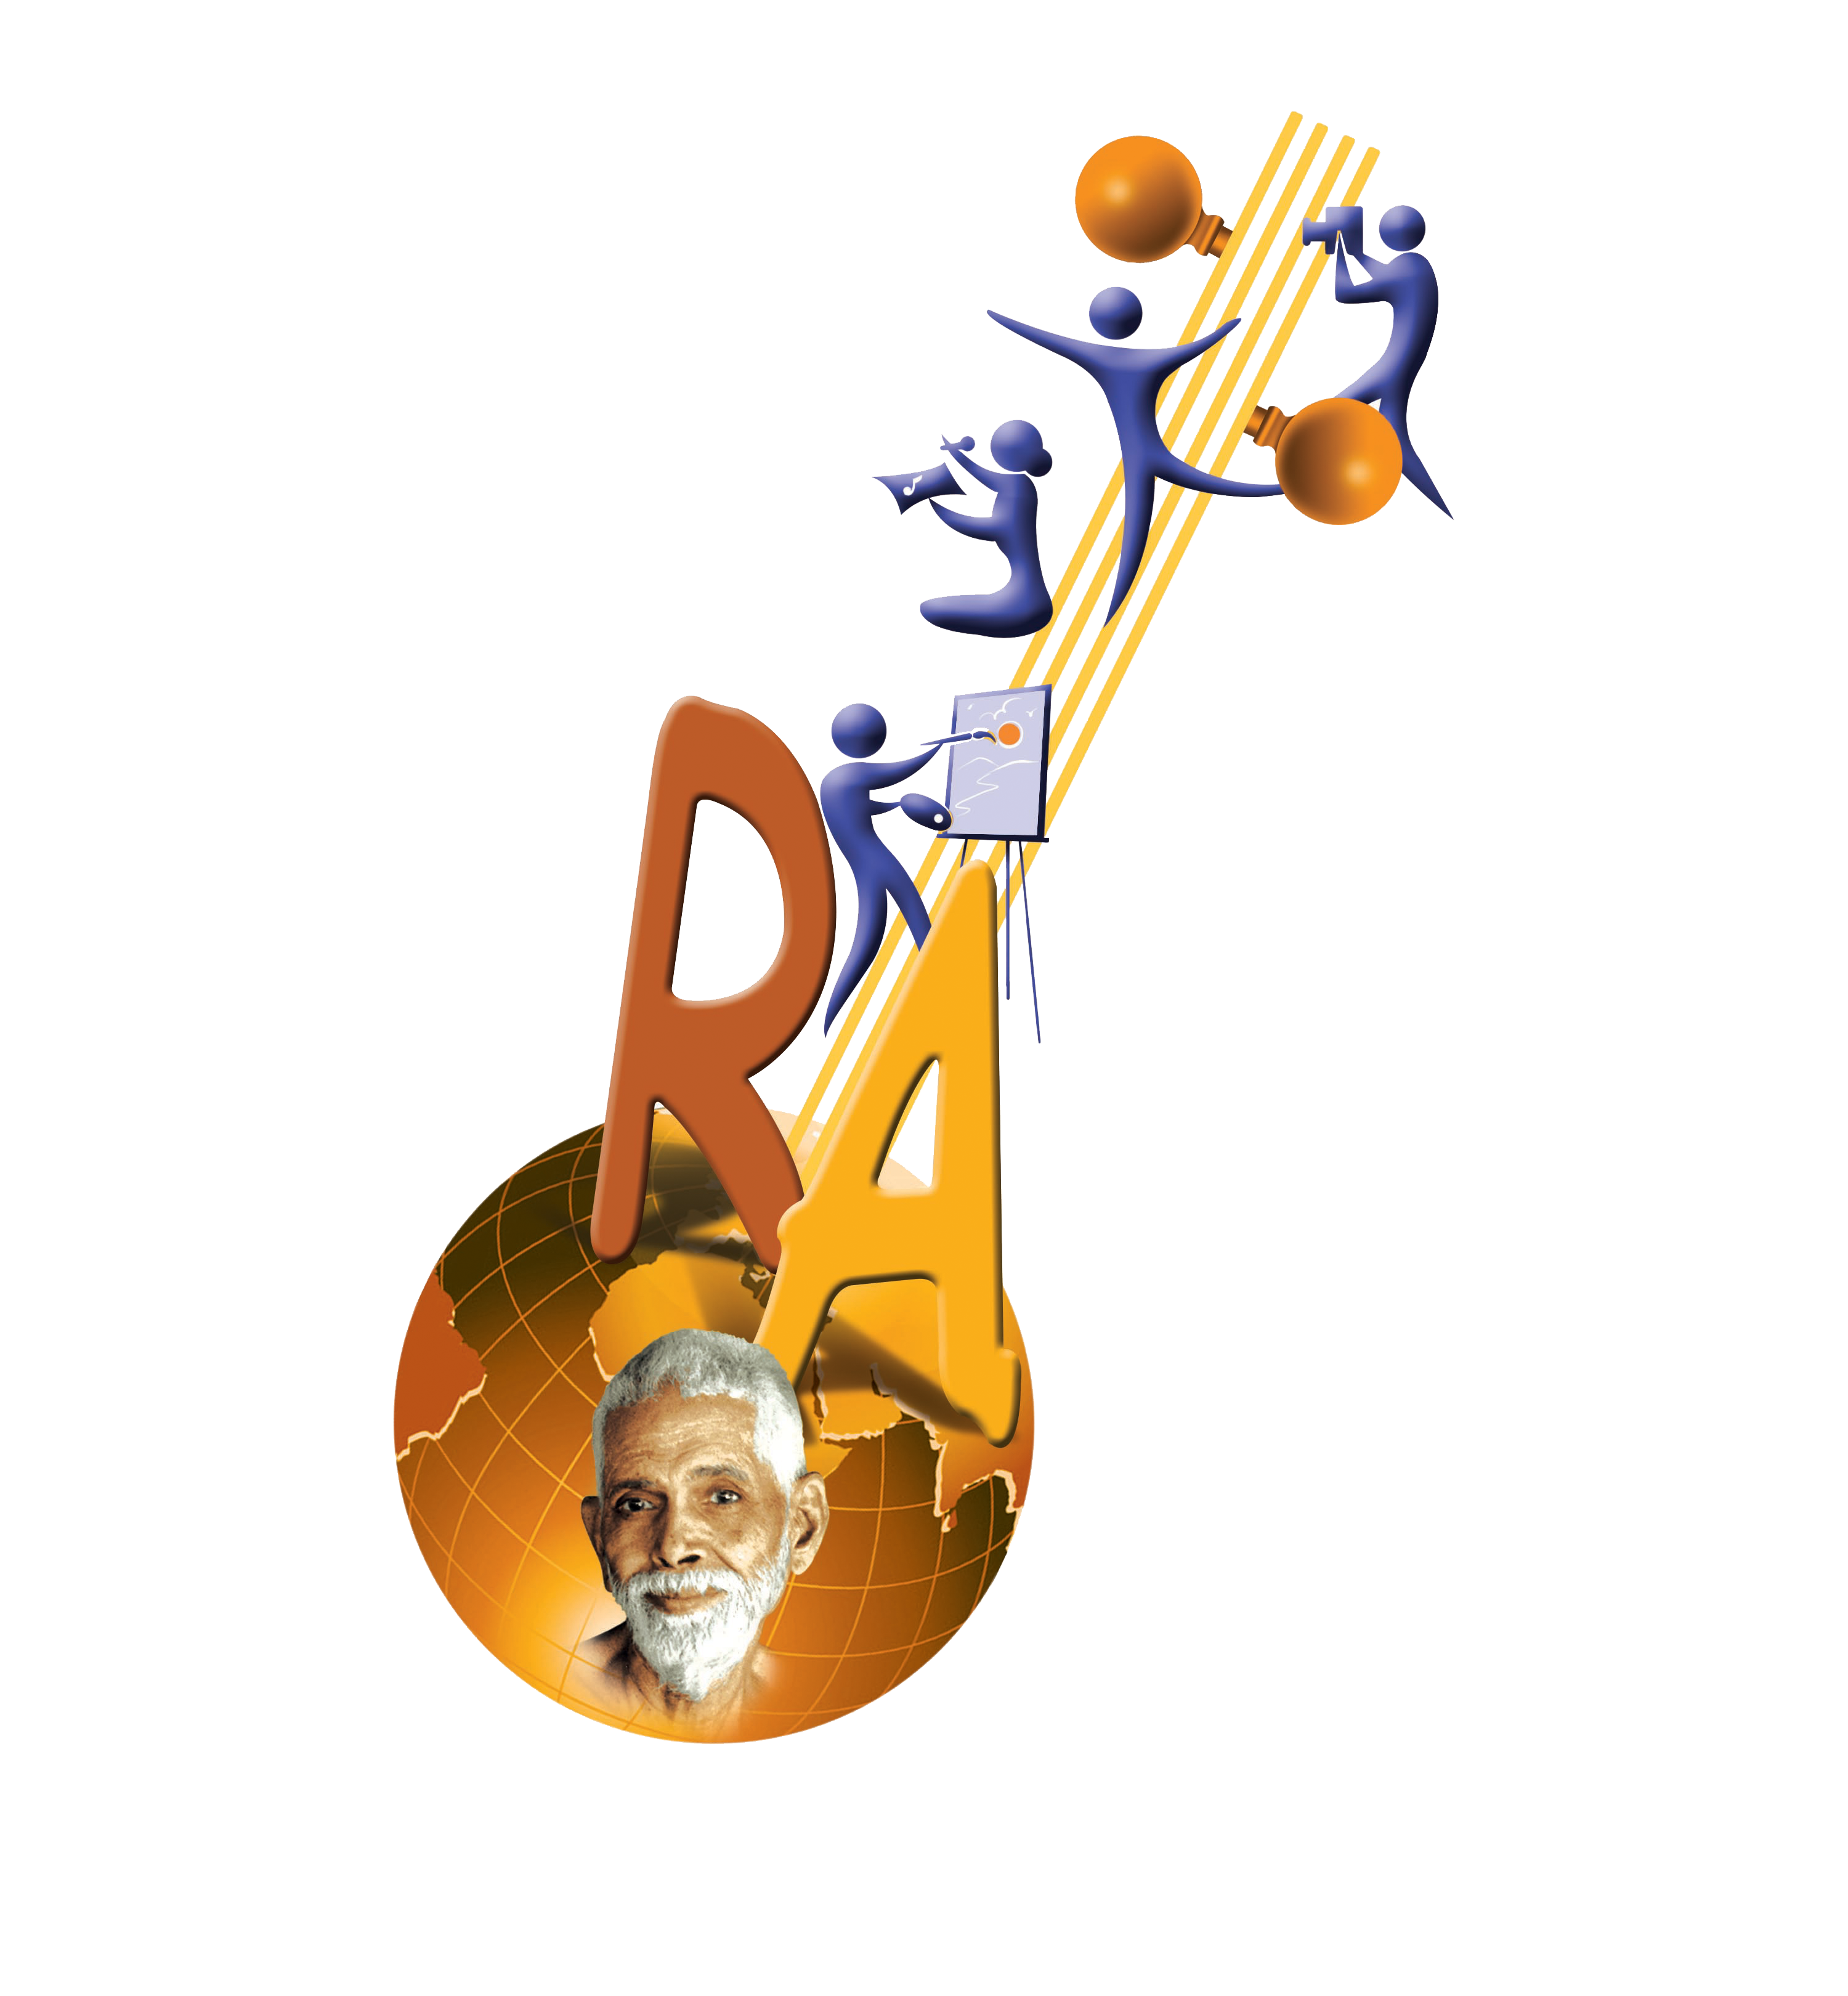 http://ramanacentre.com/wp-content/themes/ramana/images/ra awards.png